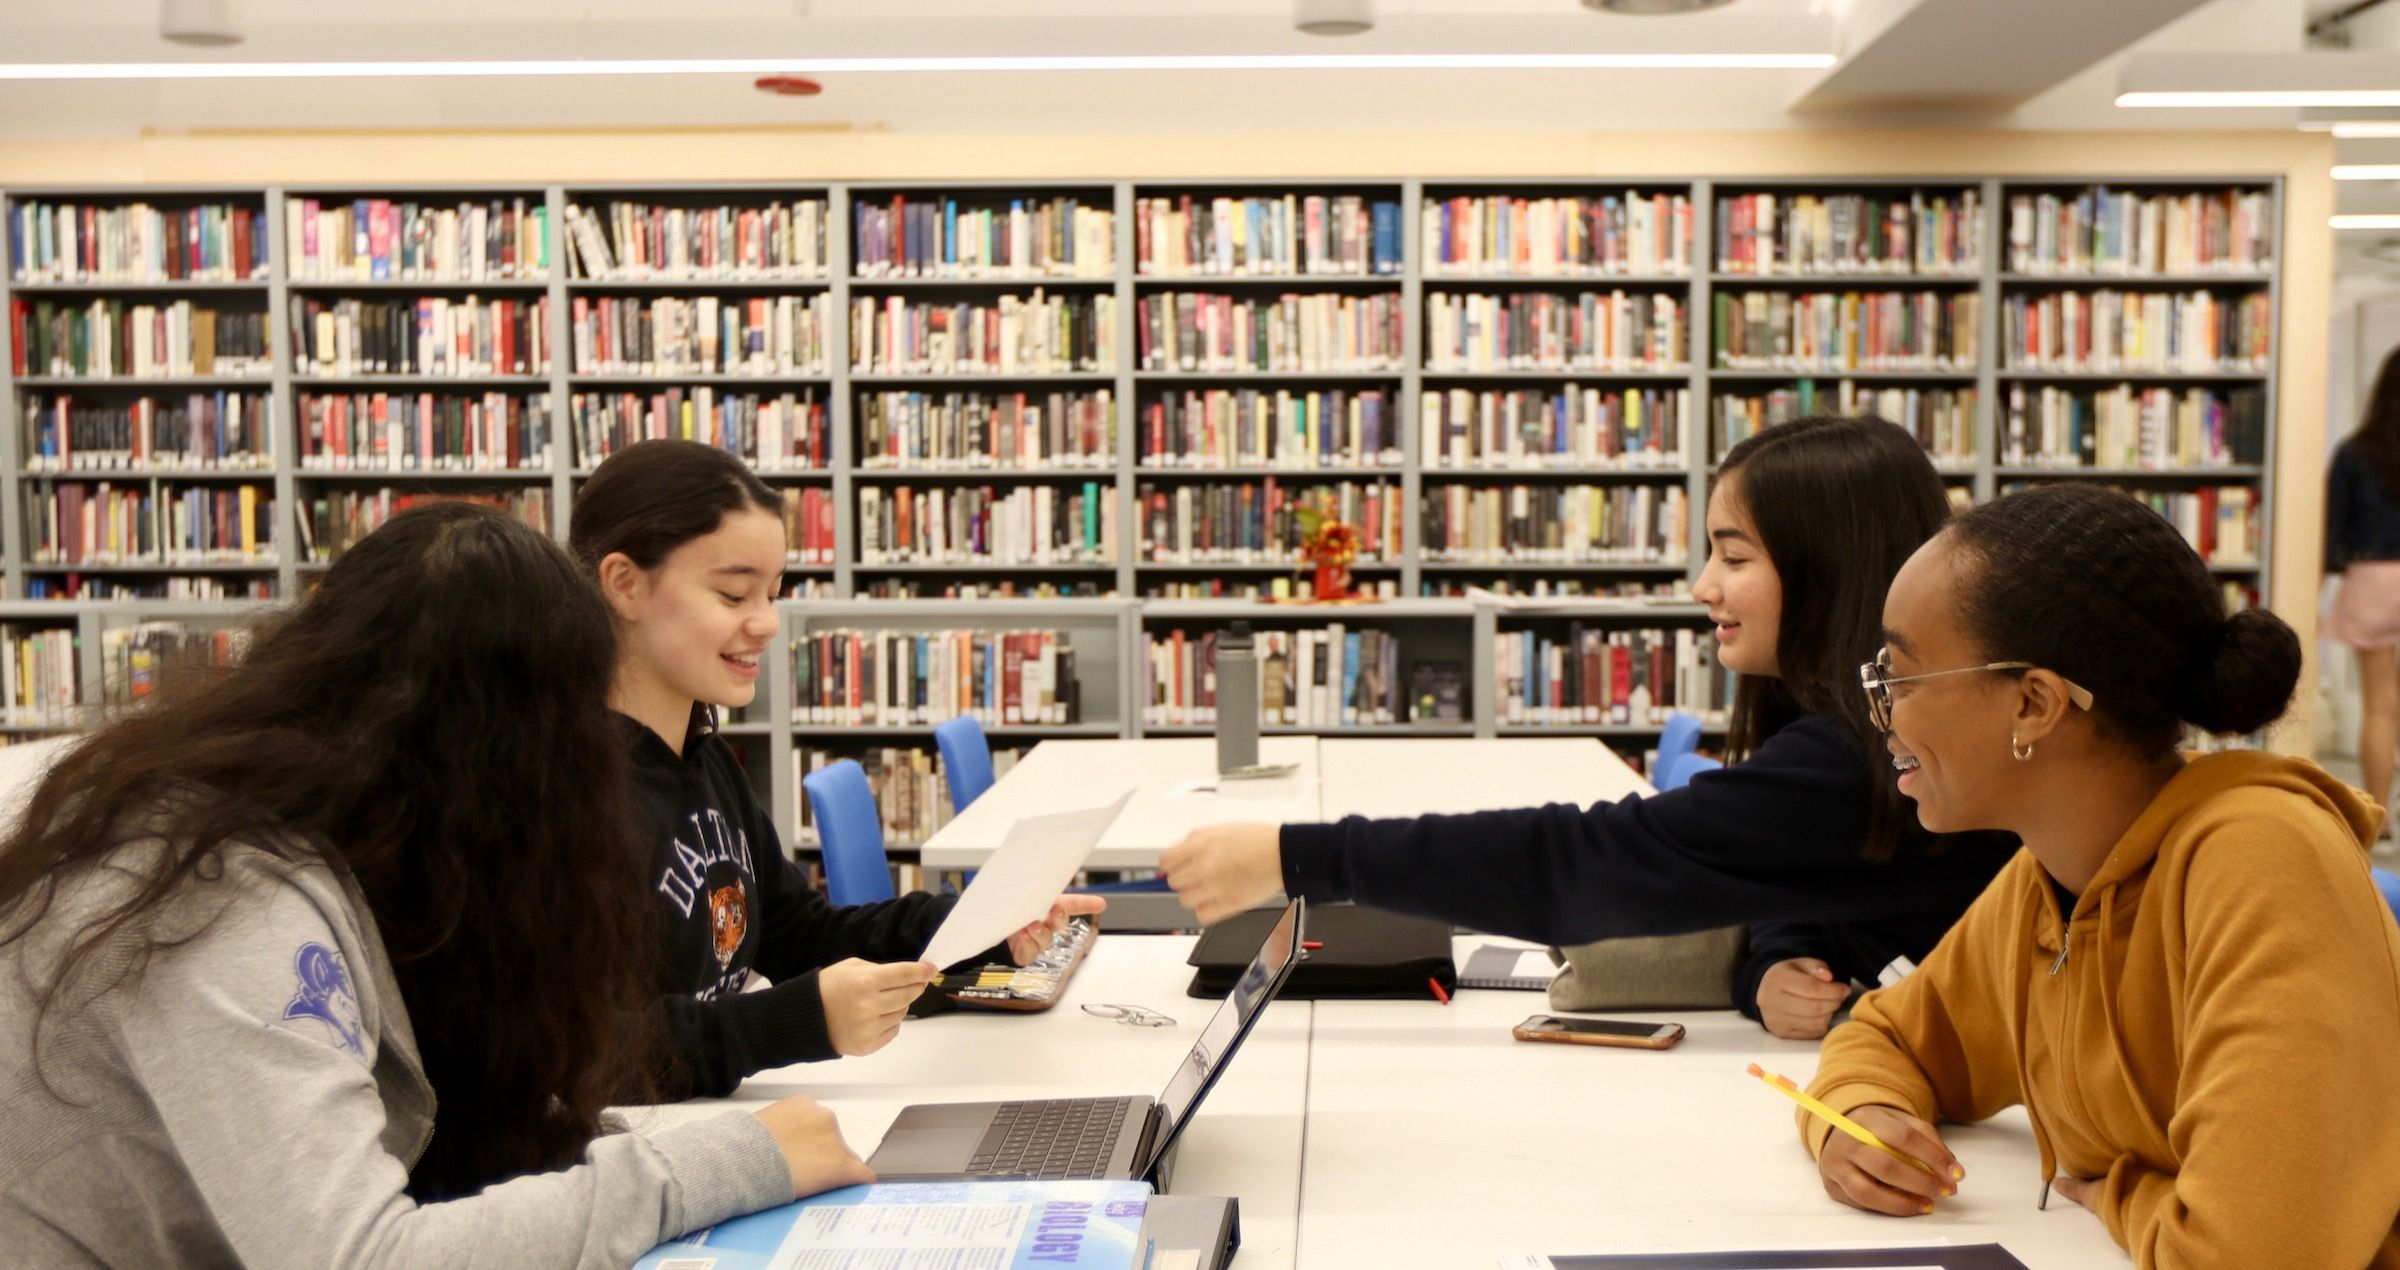 Dalton's libraries offer a rich and diverse program to support all aspects of the school's curriculum while fostering a lifelong love of reading and learning.